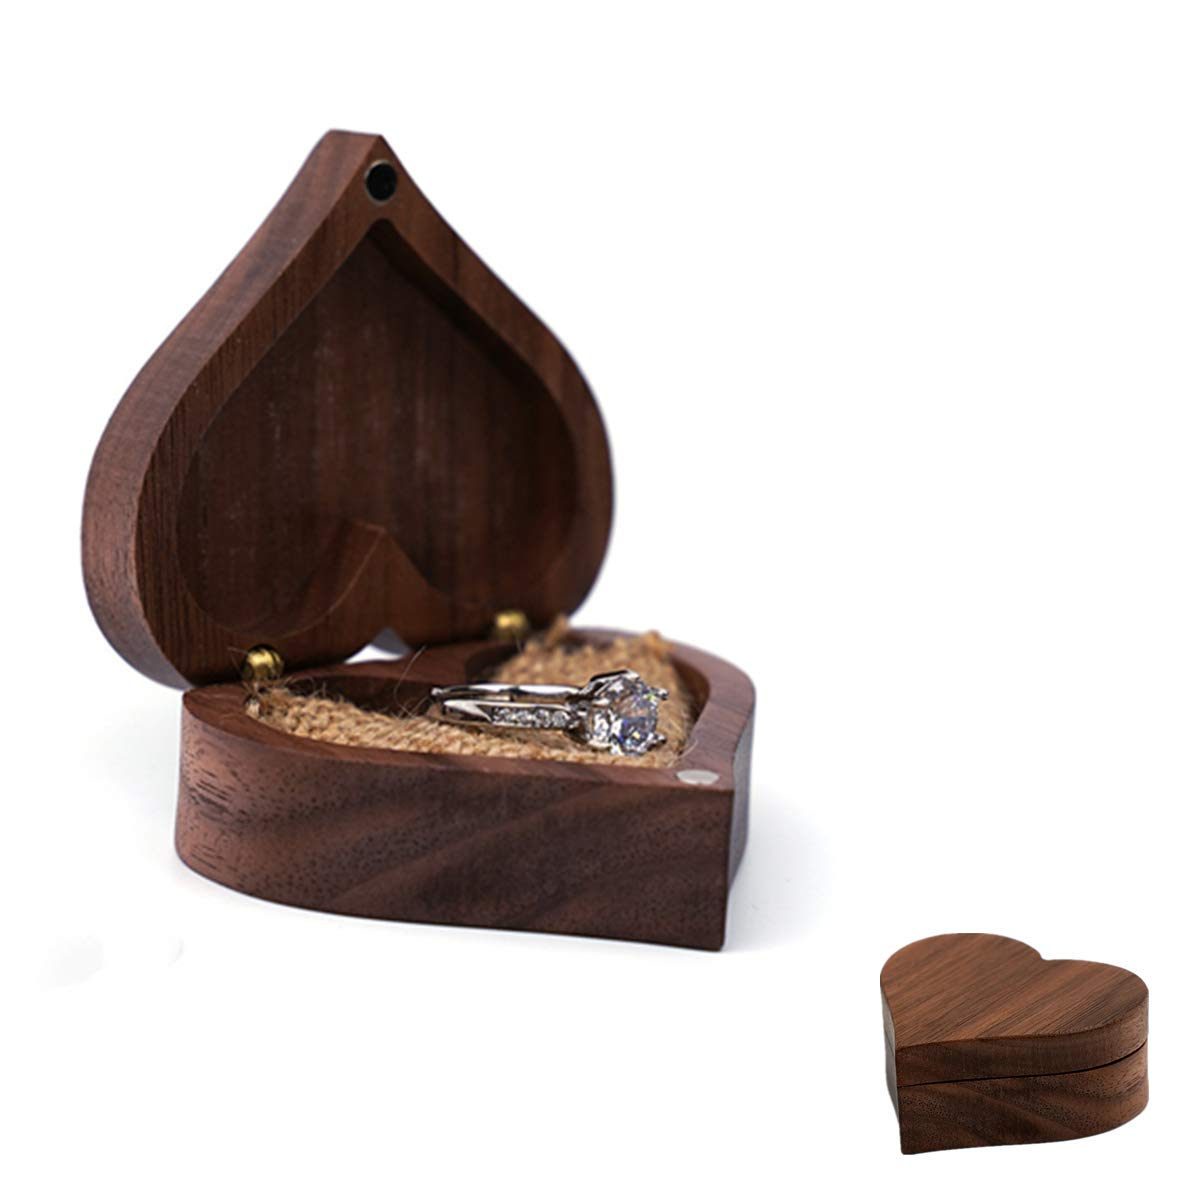 Walnut Wood Ring Box, Solid Wood Engagement Ring Jewelry Display Box with Vintage Linen, for Necklaces, Earrings, Bracelet, Wedding Ring Holder Box Gift (Heart-shaped box)